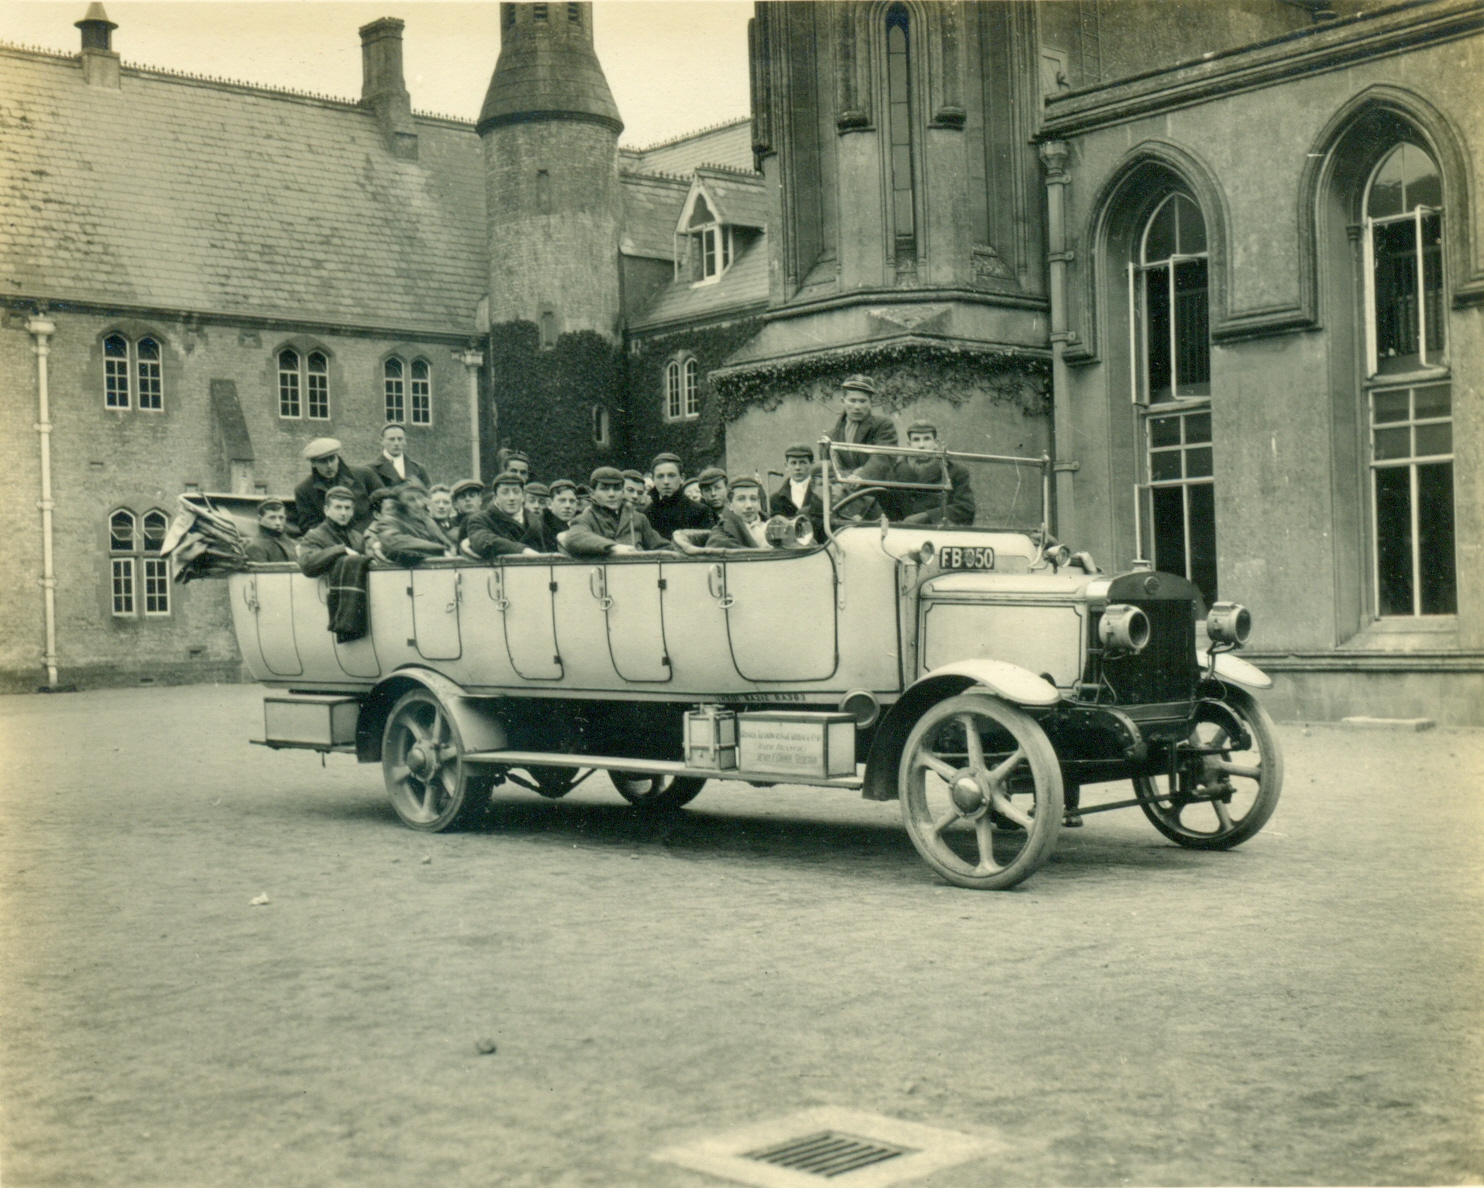 Old photo of large topless car/ bus with pupils inside.